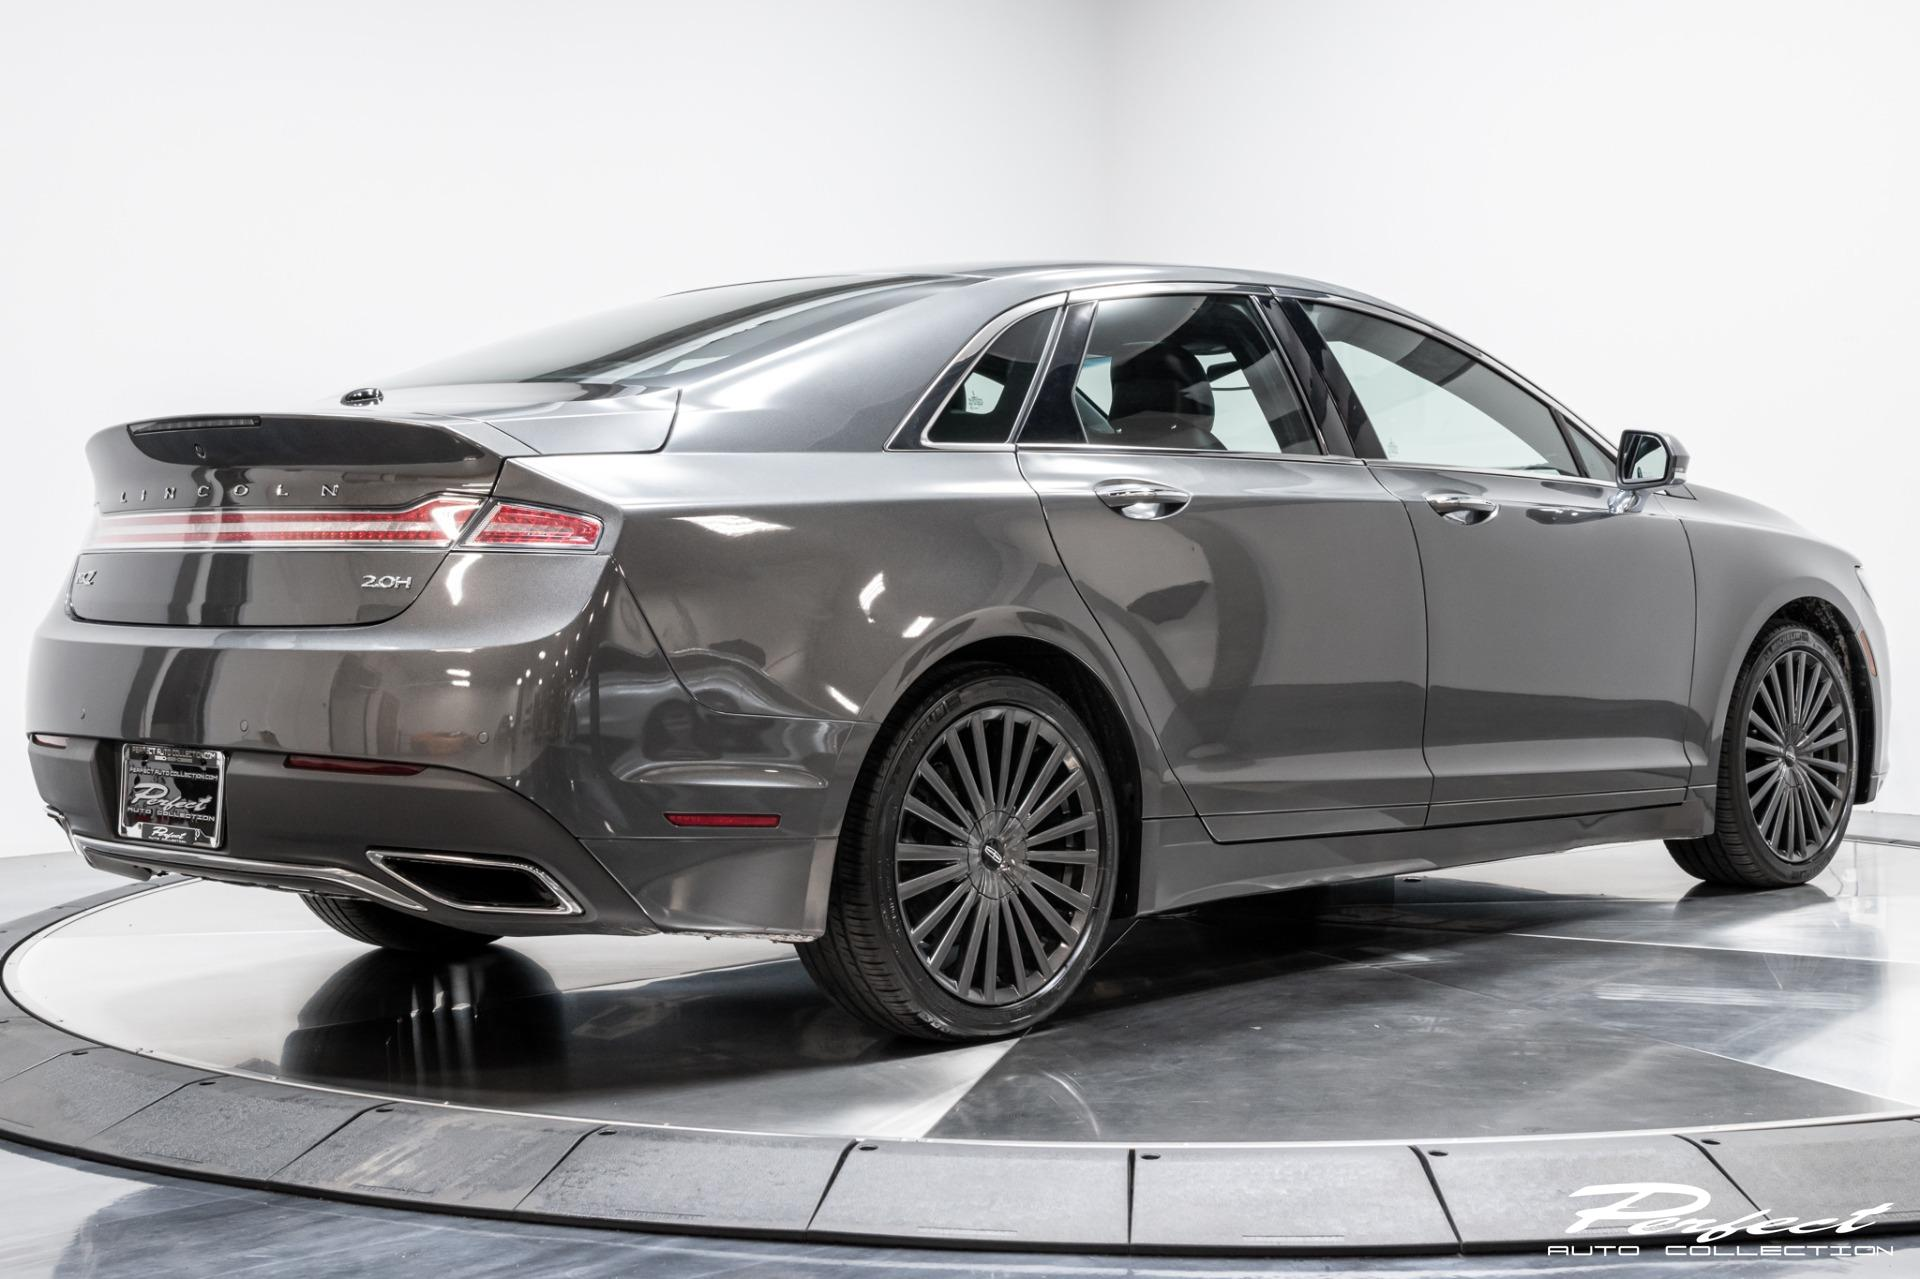 Used 2018 Lincoln MKZ Hybrid Reserve for sale Sold at Perfect Auto Collection in Akron OH 44310 3